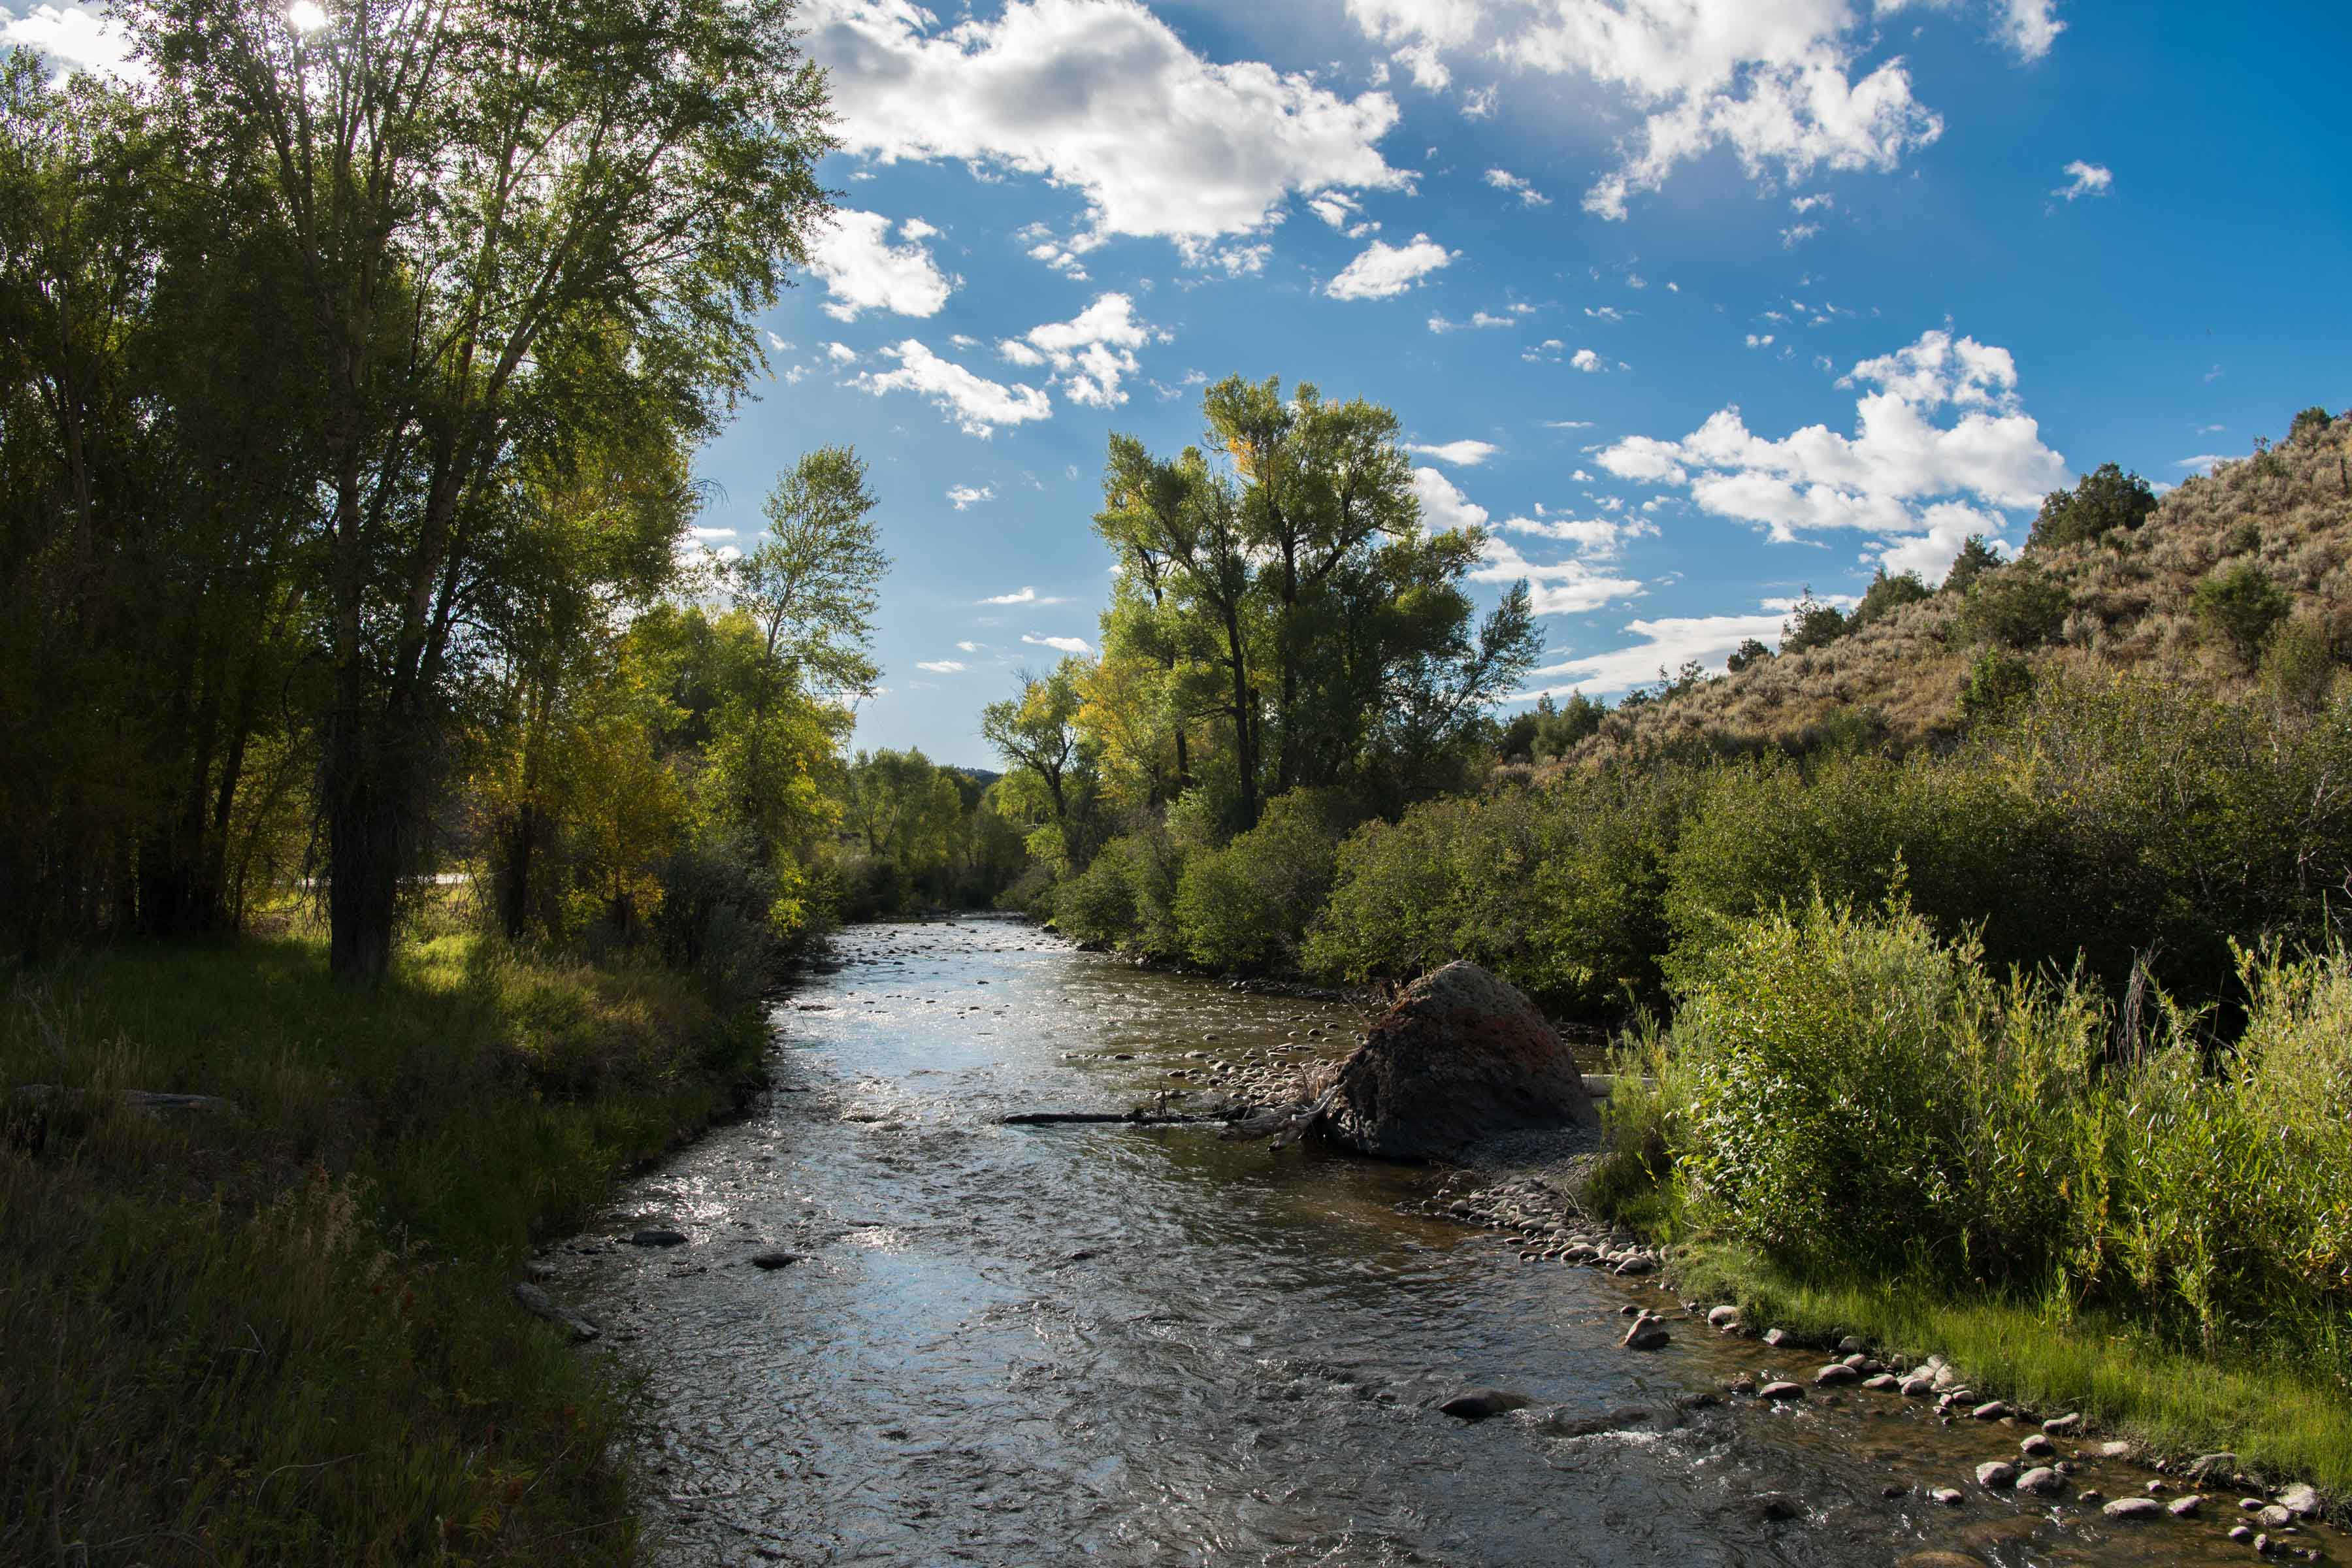 The Cimarron River, a tributary of the Gunnison River, flowing in Colorado.